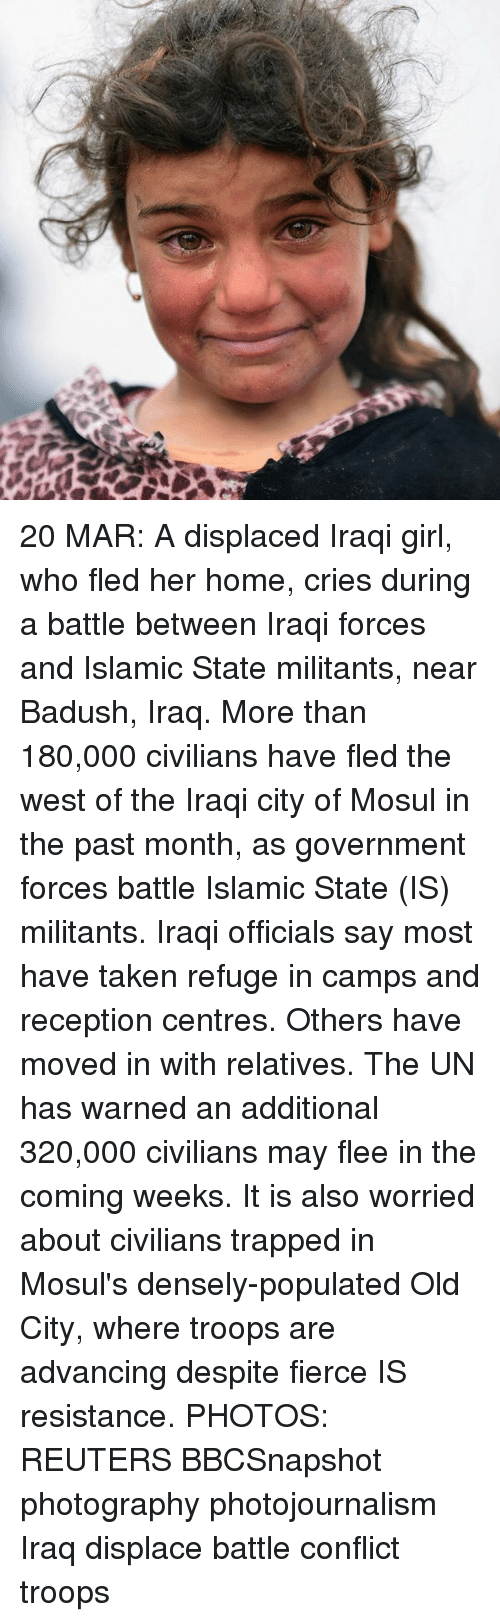 Memes, 🤖, and Mar: 20 MAR: A displaced Iraqi girl, who fled her home, cries during a battle between Iraqi forces and Islamic State militants, near Badush, Iraq. More than 180,000 civilians have fled the west of the Iraqi city of Mosul in the past month, as government forces battle Islamic State (IS) militants. Iraqi officials say most have taken refuge in camps and reception centres. Others have moved in with relatives. The UN has warned an additional 320,000 civilians may flee in the coming weeks. It is also worried about civilians trapped in Mosul's densely-populated Old City, where troops are advancing despite fierce IS resistance. PHOTOS: REUTERS BBCSnapshot photography photojournalism Iraq displace battle conflict troops